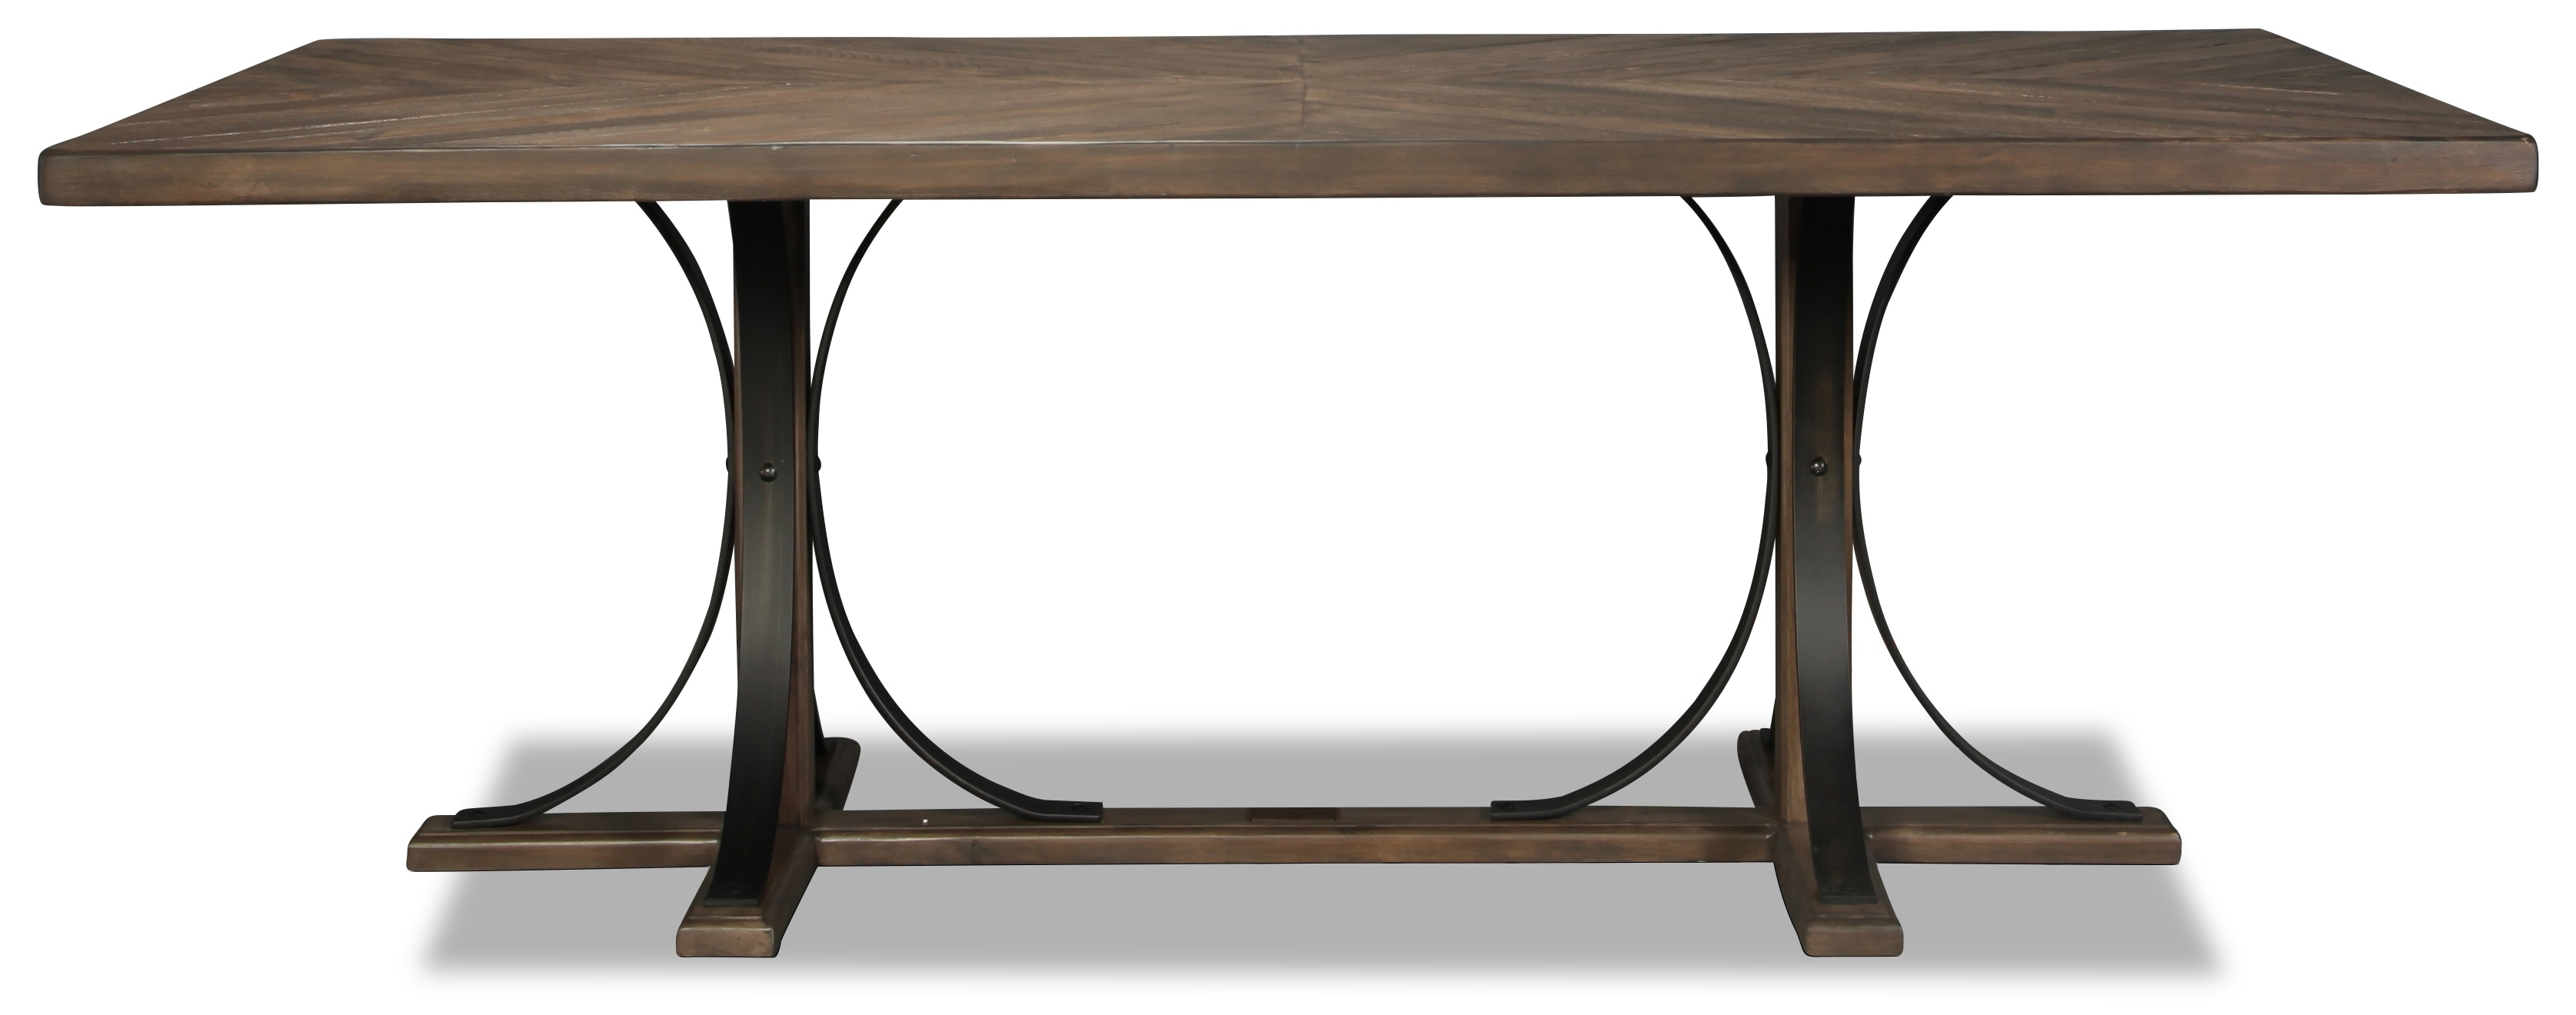 Magnolia Home Traditional Iron Trestle Table (View 17 of 25)